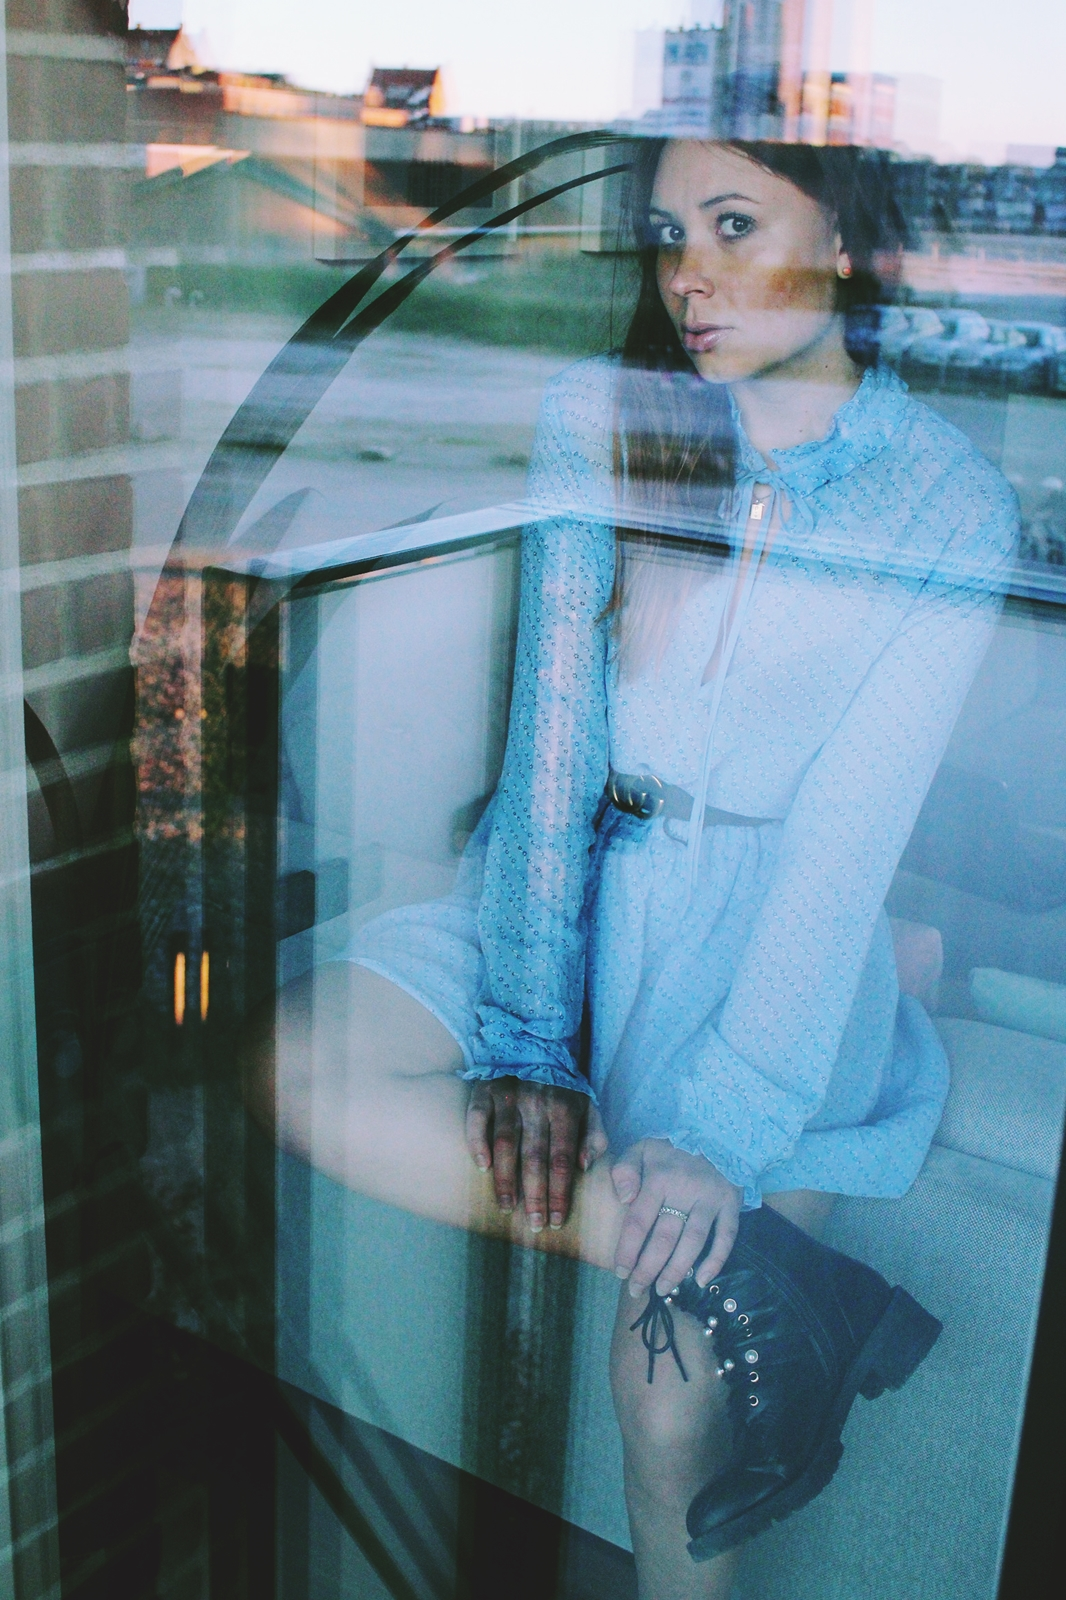 shot through window wearing blue dress and combat boots